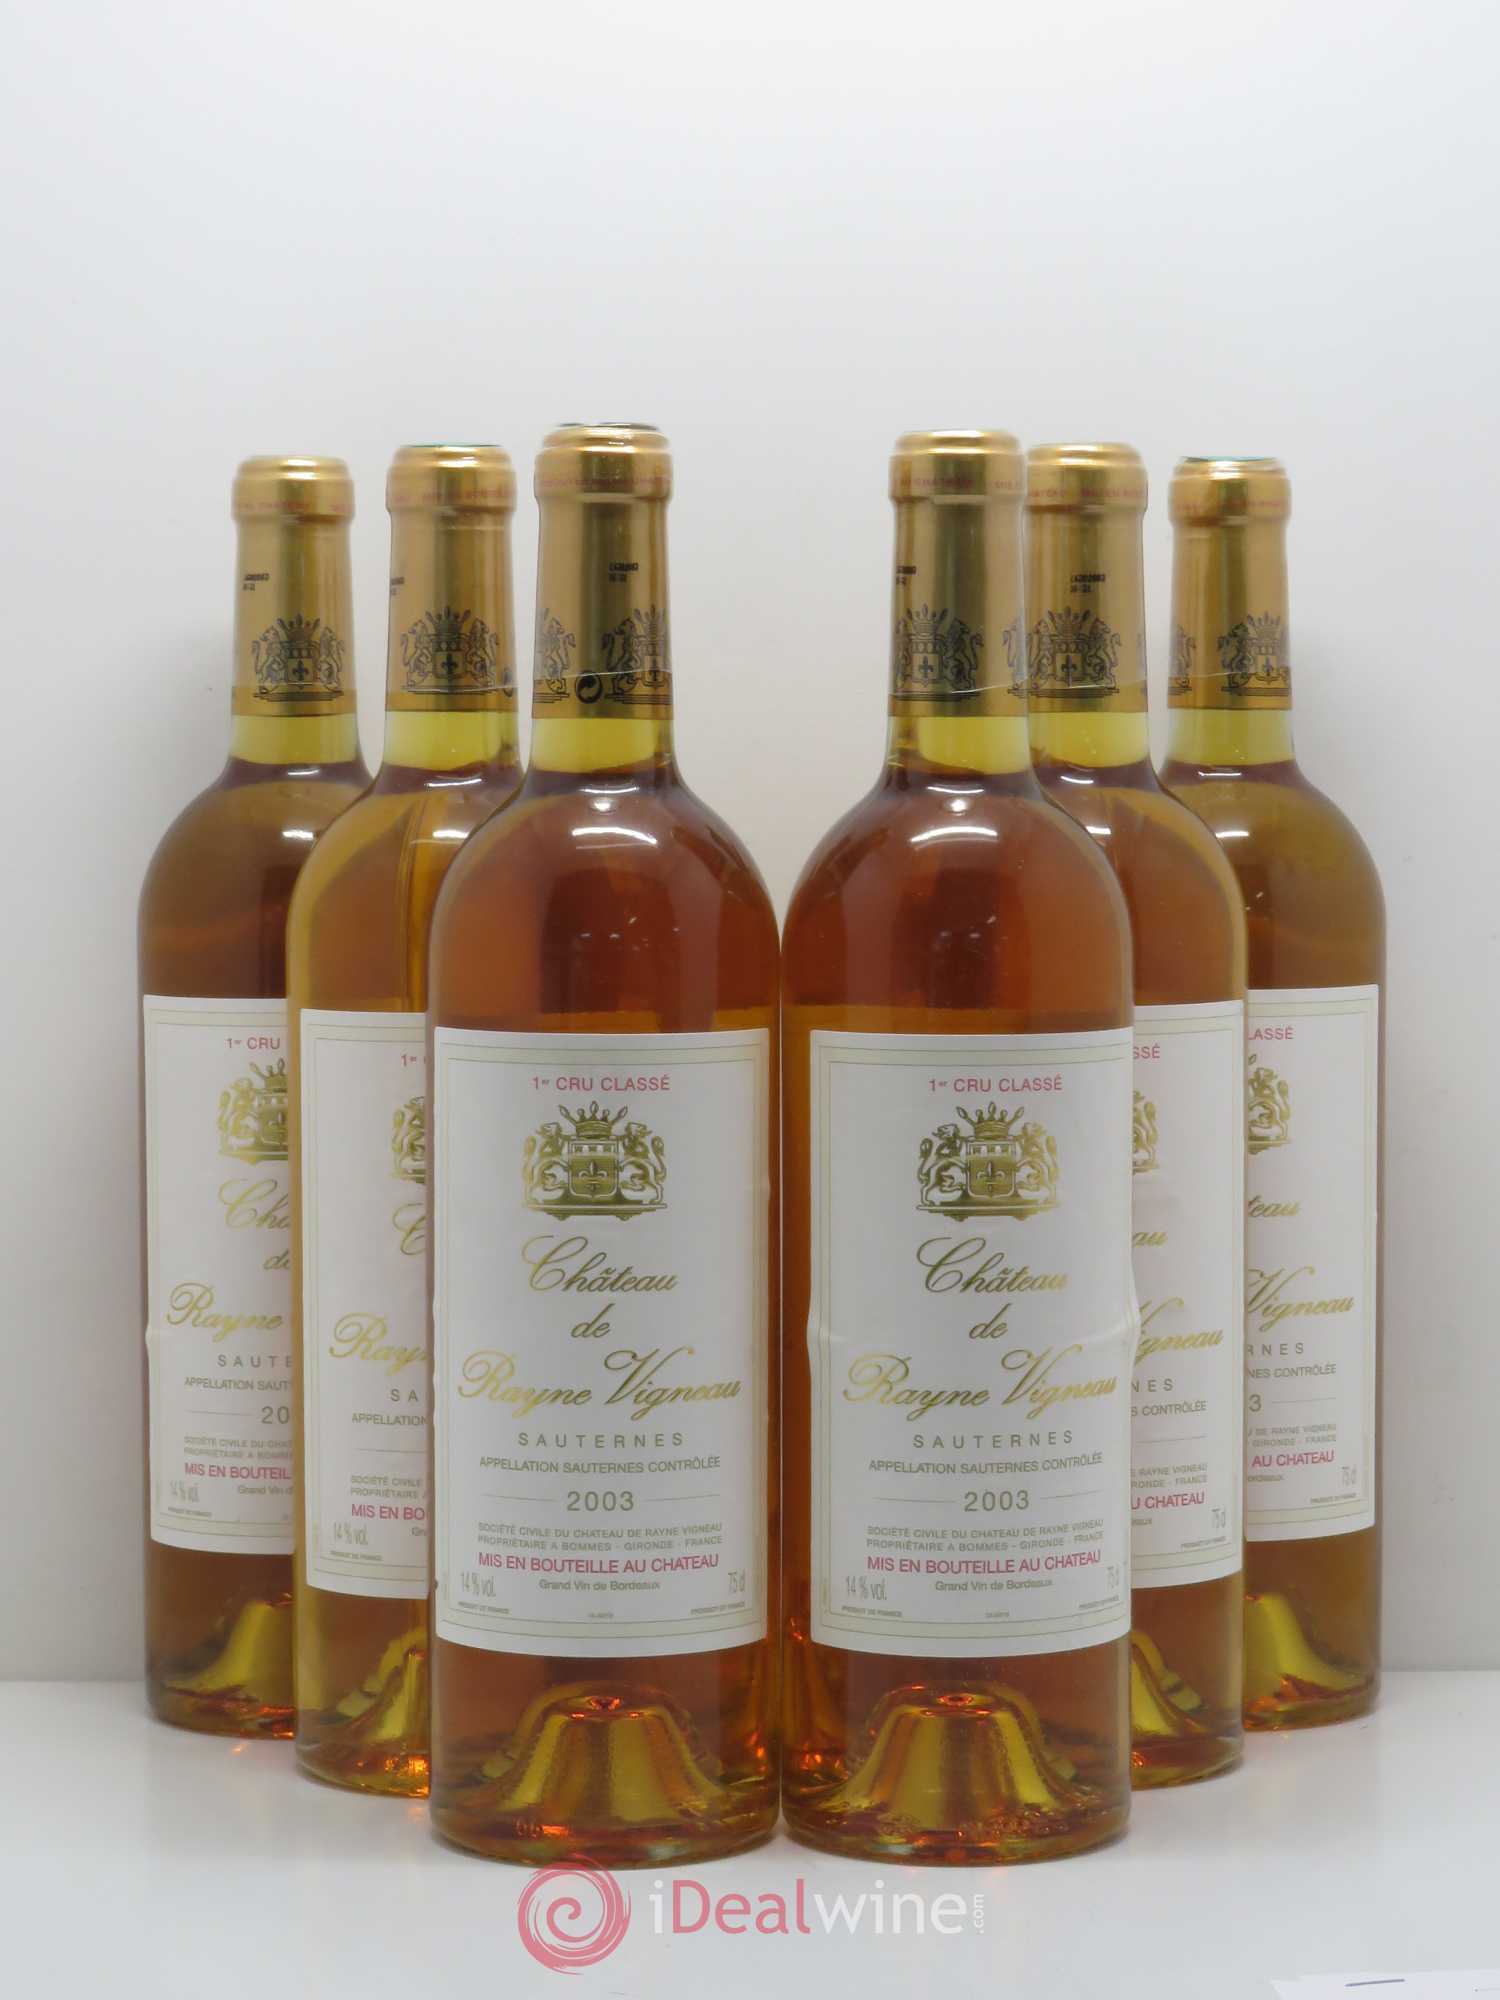 Château de Rayne Vigneau 1er Grand Cru Classé  2003 - Lot of 6 Bottles